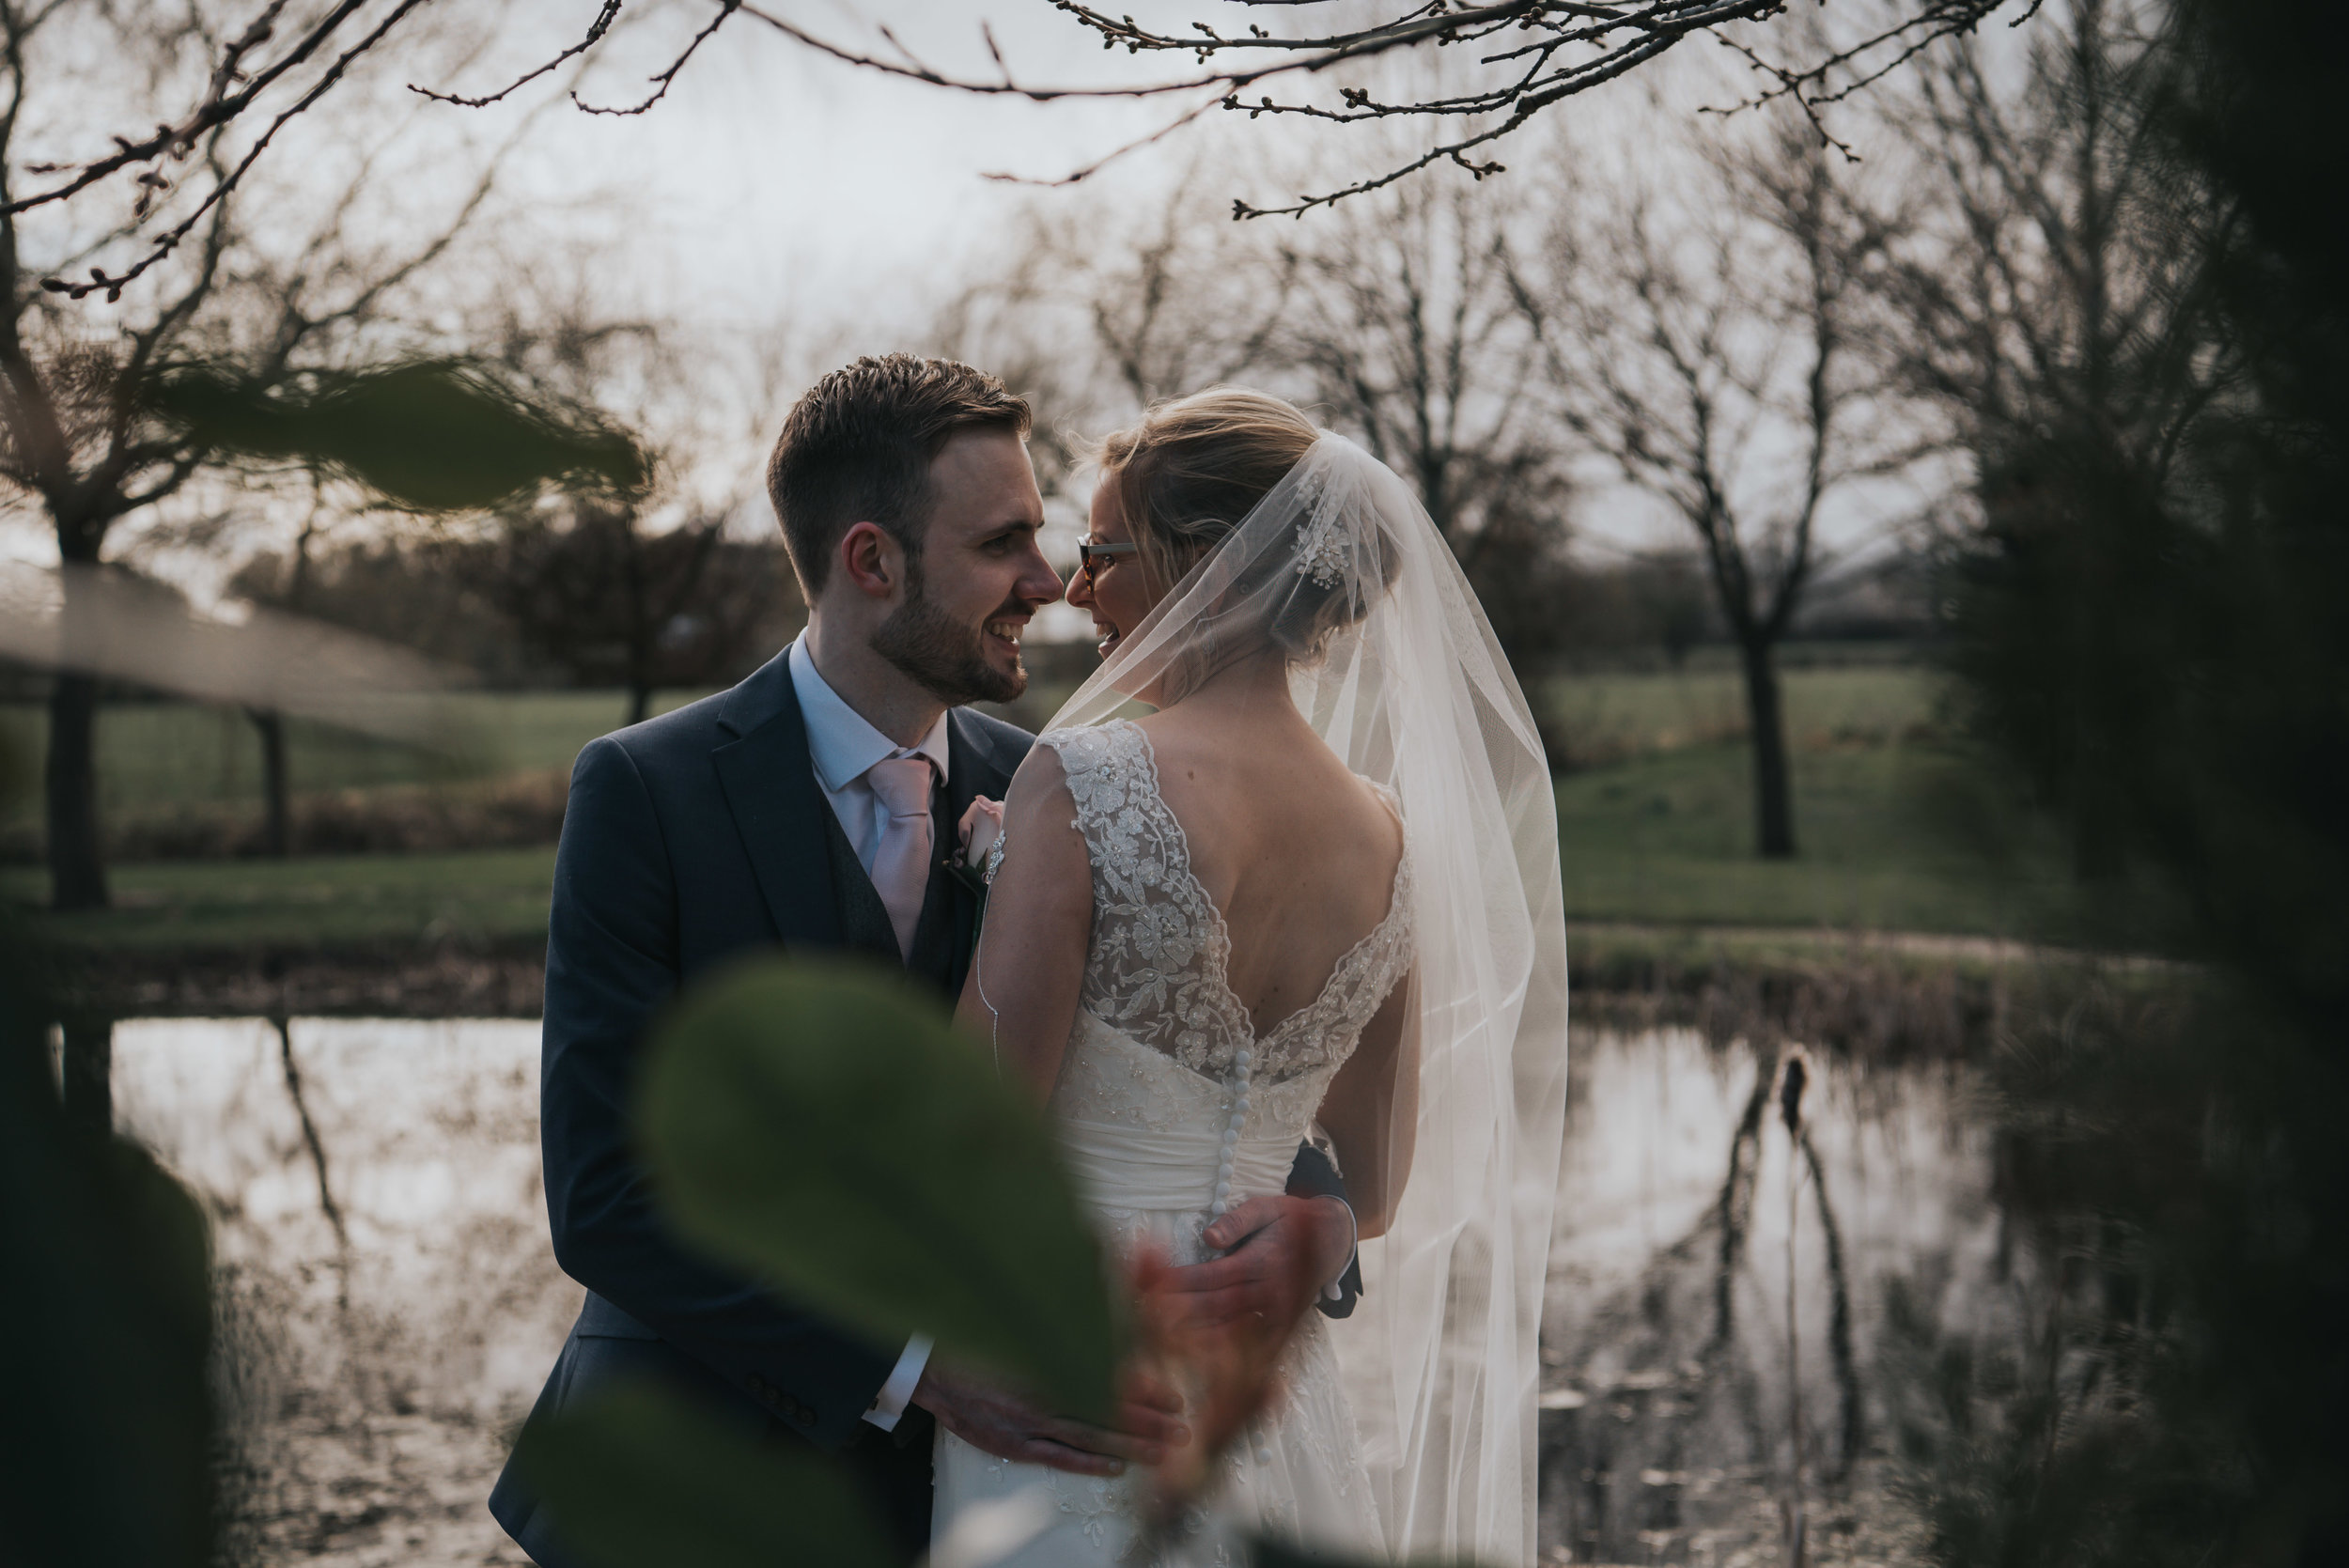 spending a moment alone at the Grosvenor Pulford during their wedding